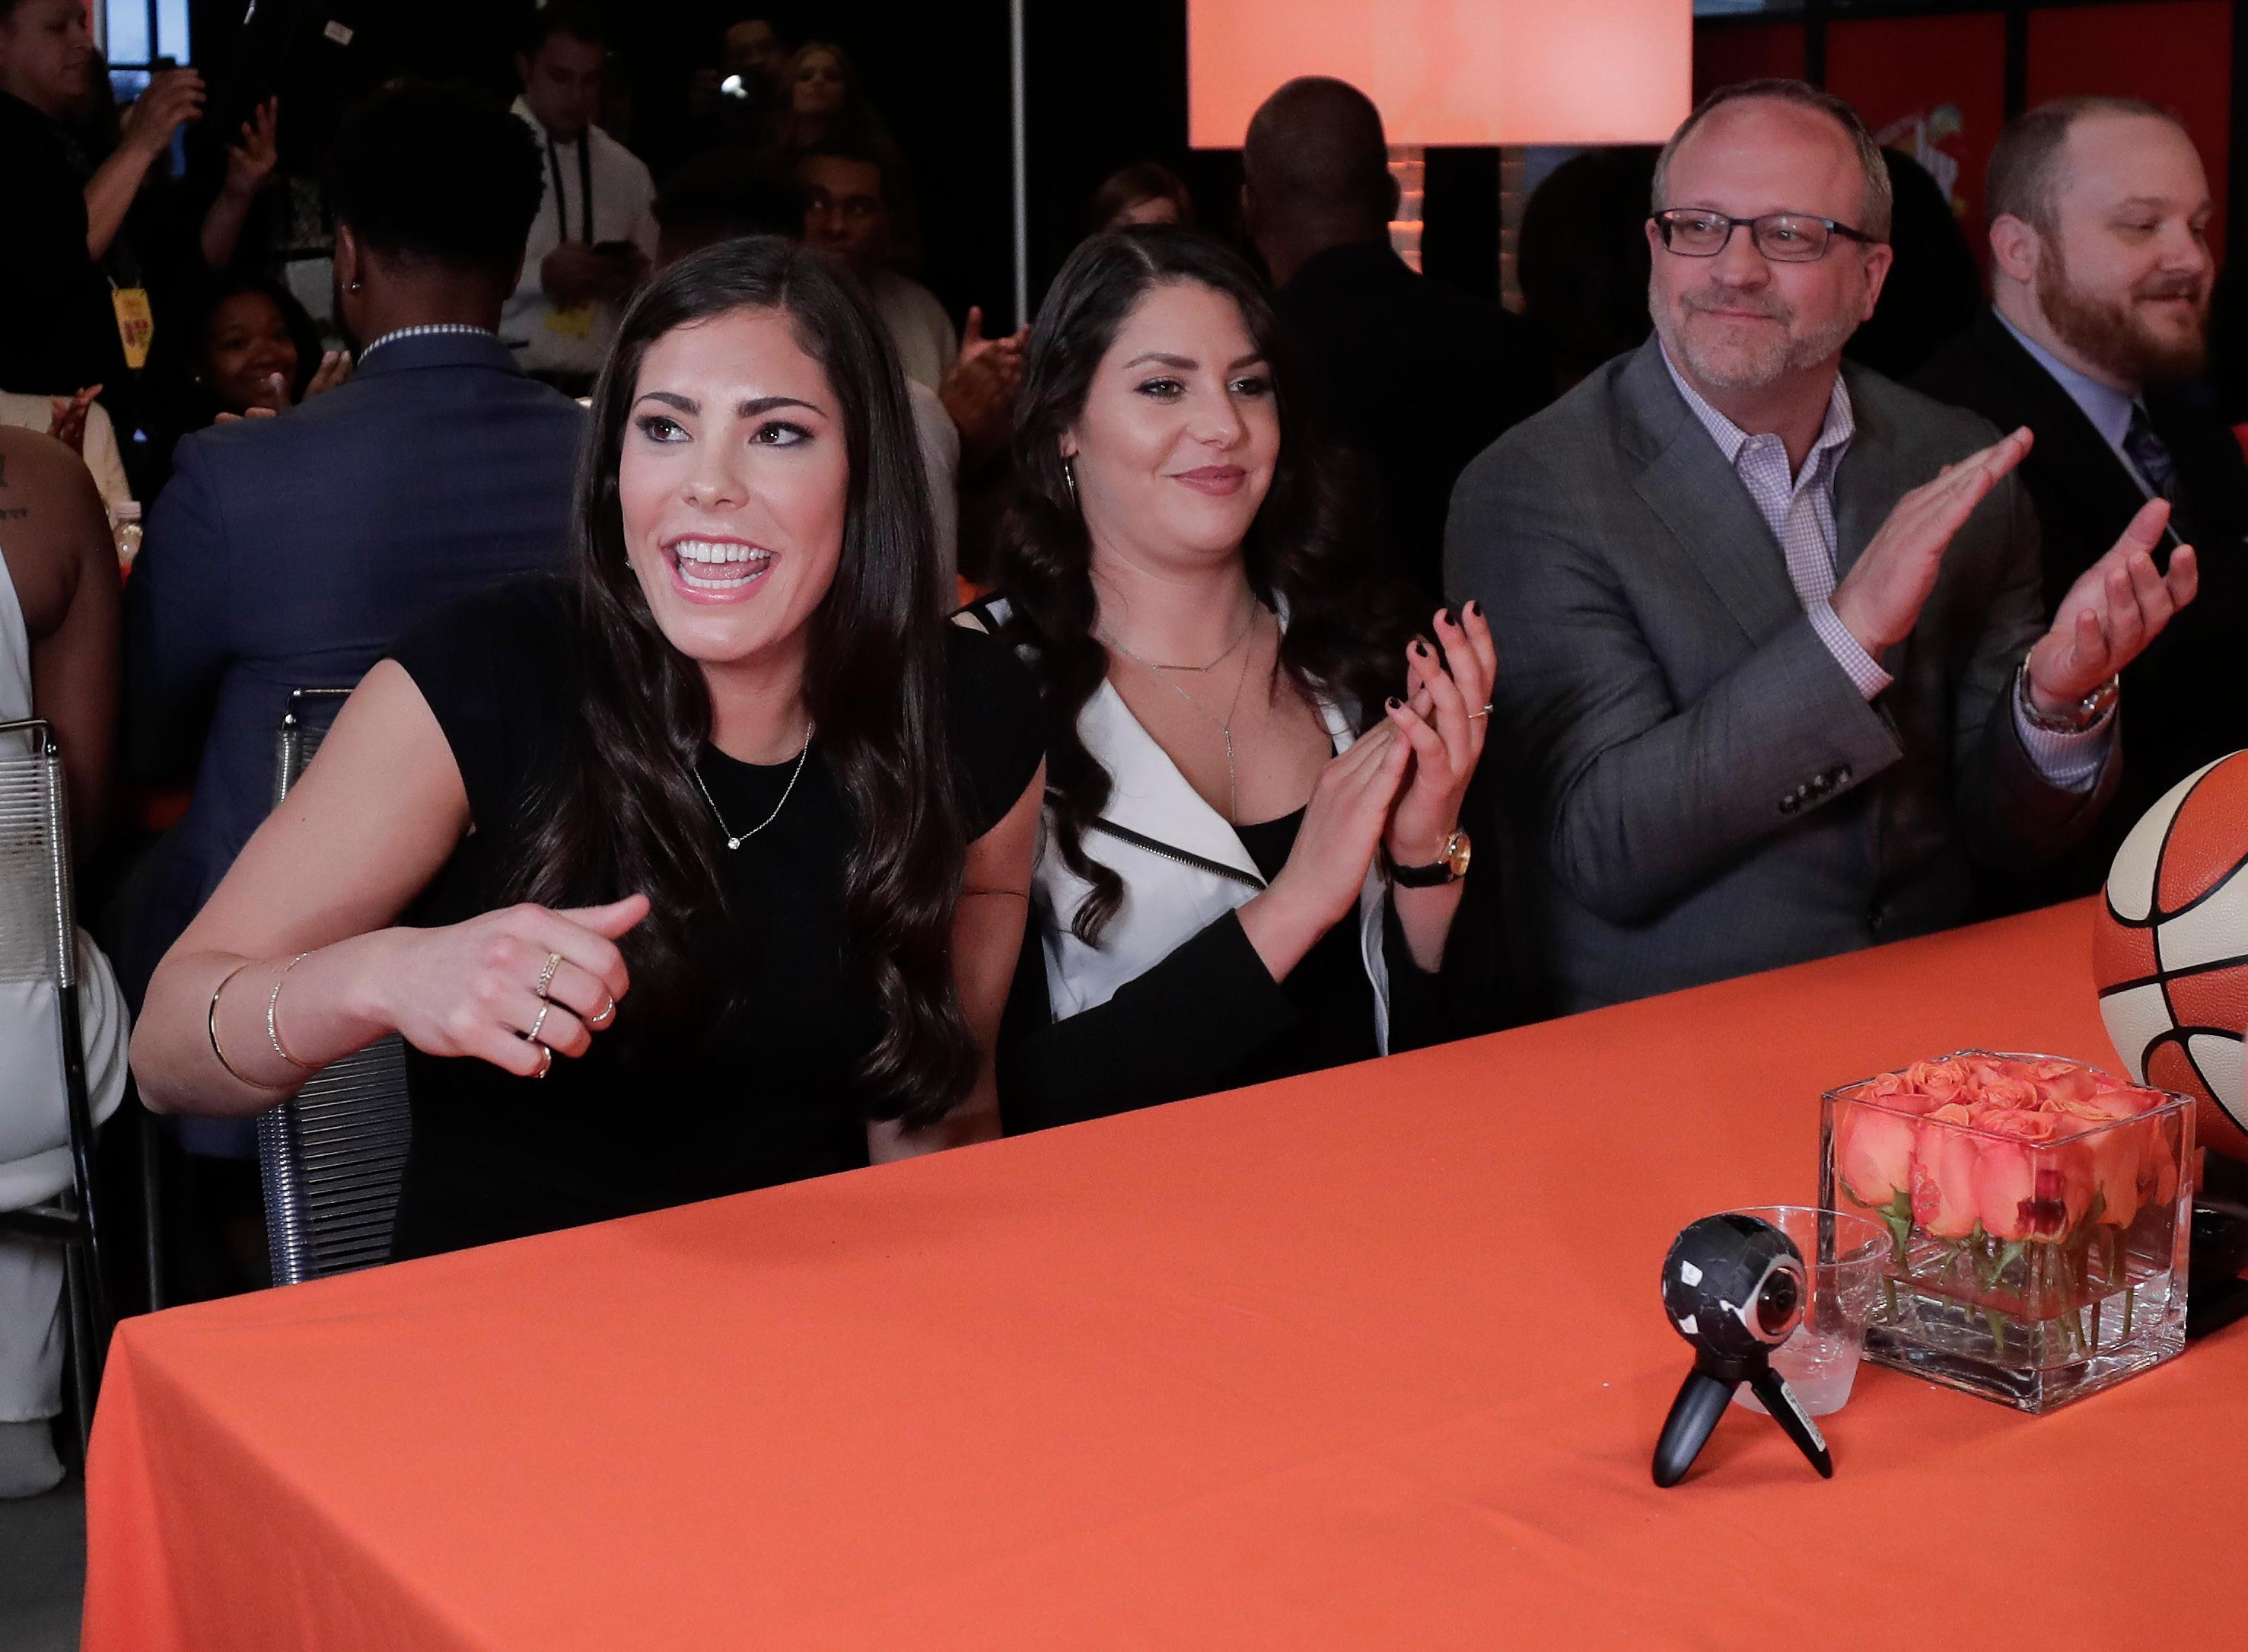 Kelsey Plum, left, reacts after being announced as the No. 1 pick in the WNBA basketball draft by the San Antonio Stars, Thursday, April 13, 2017, in New York. (AP Photo/Julie Jacobson)